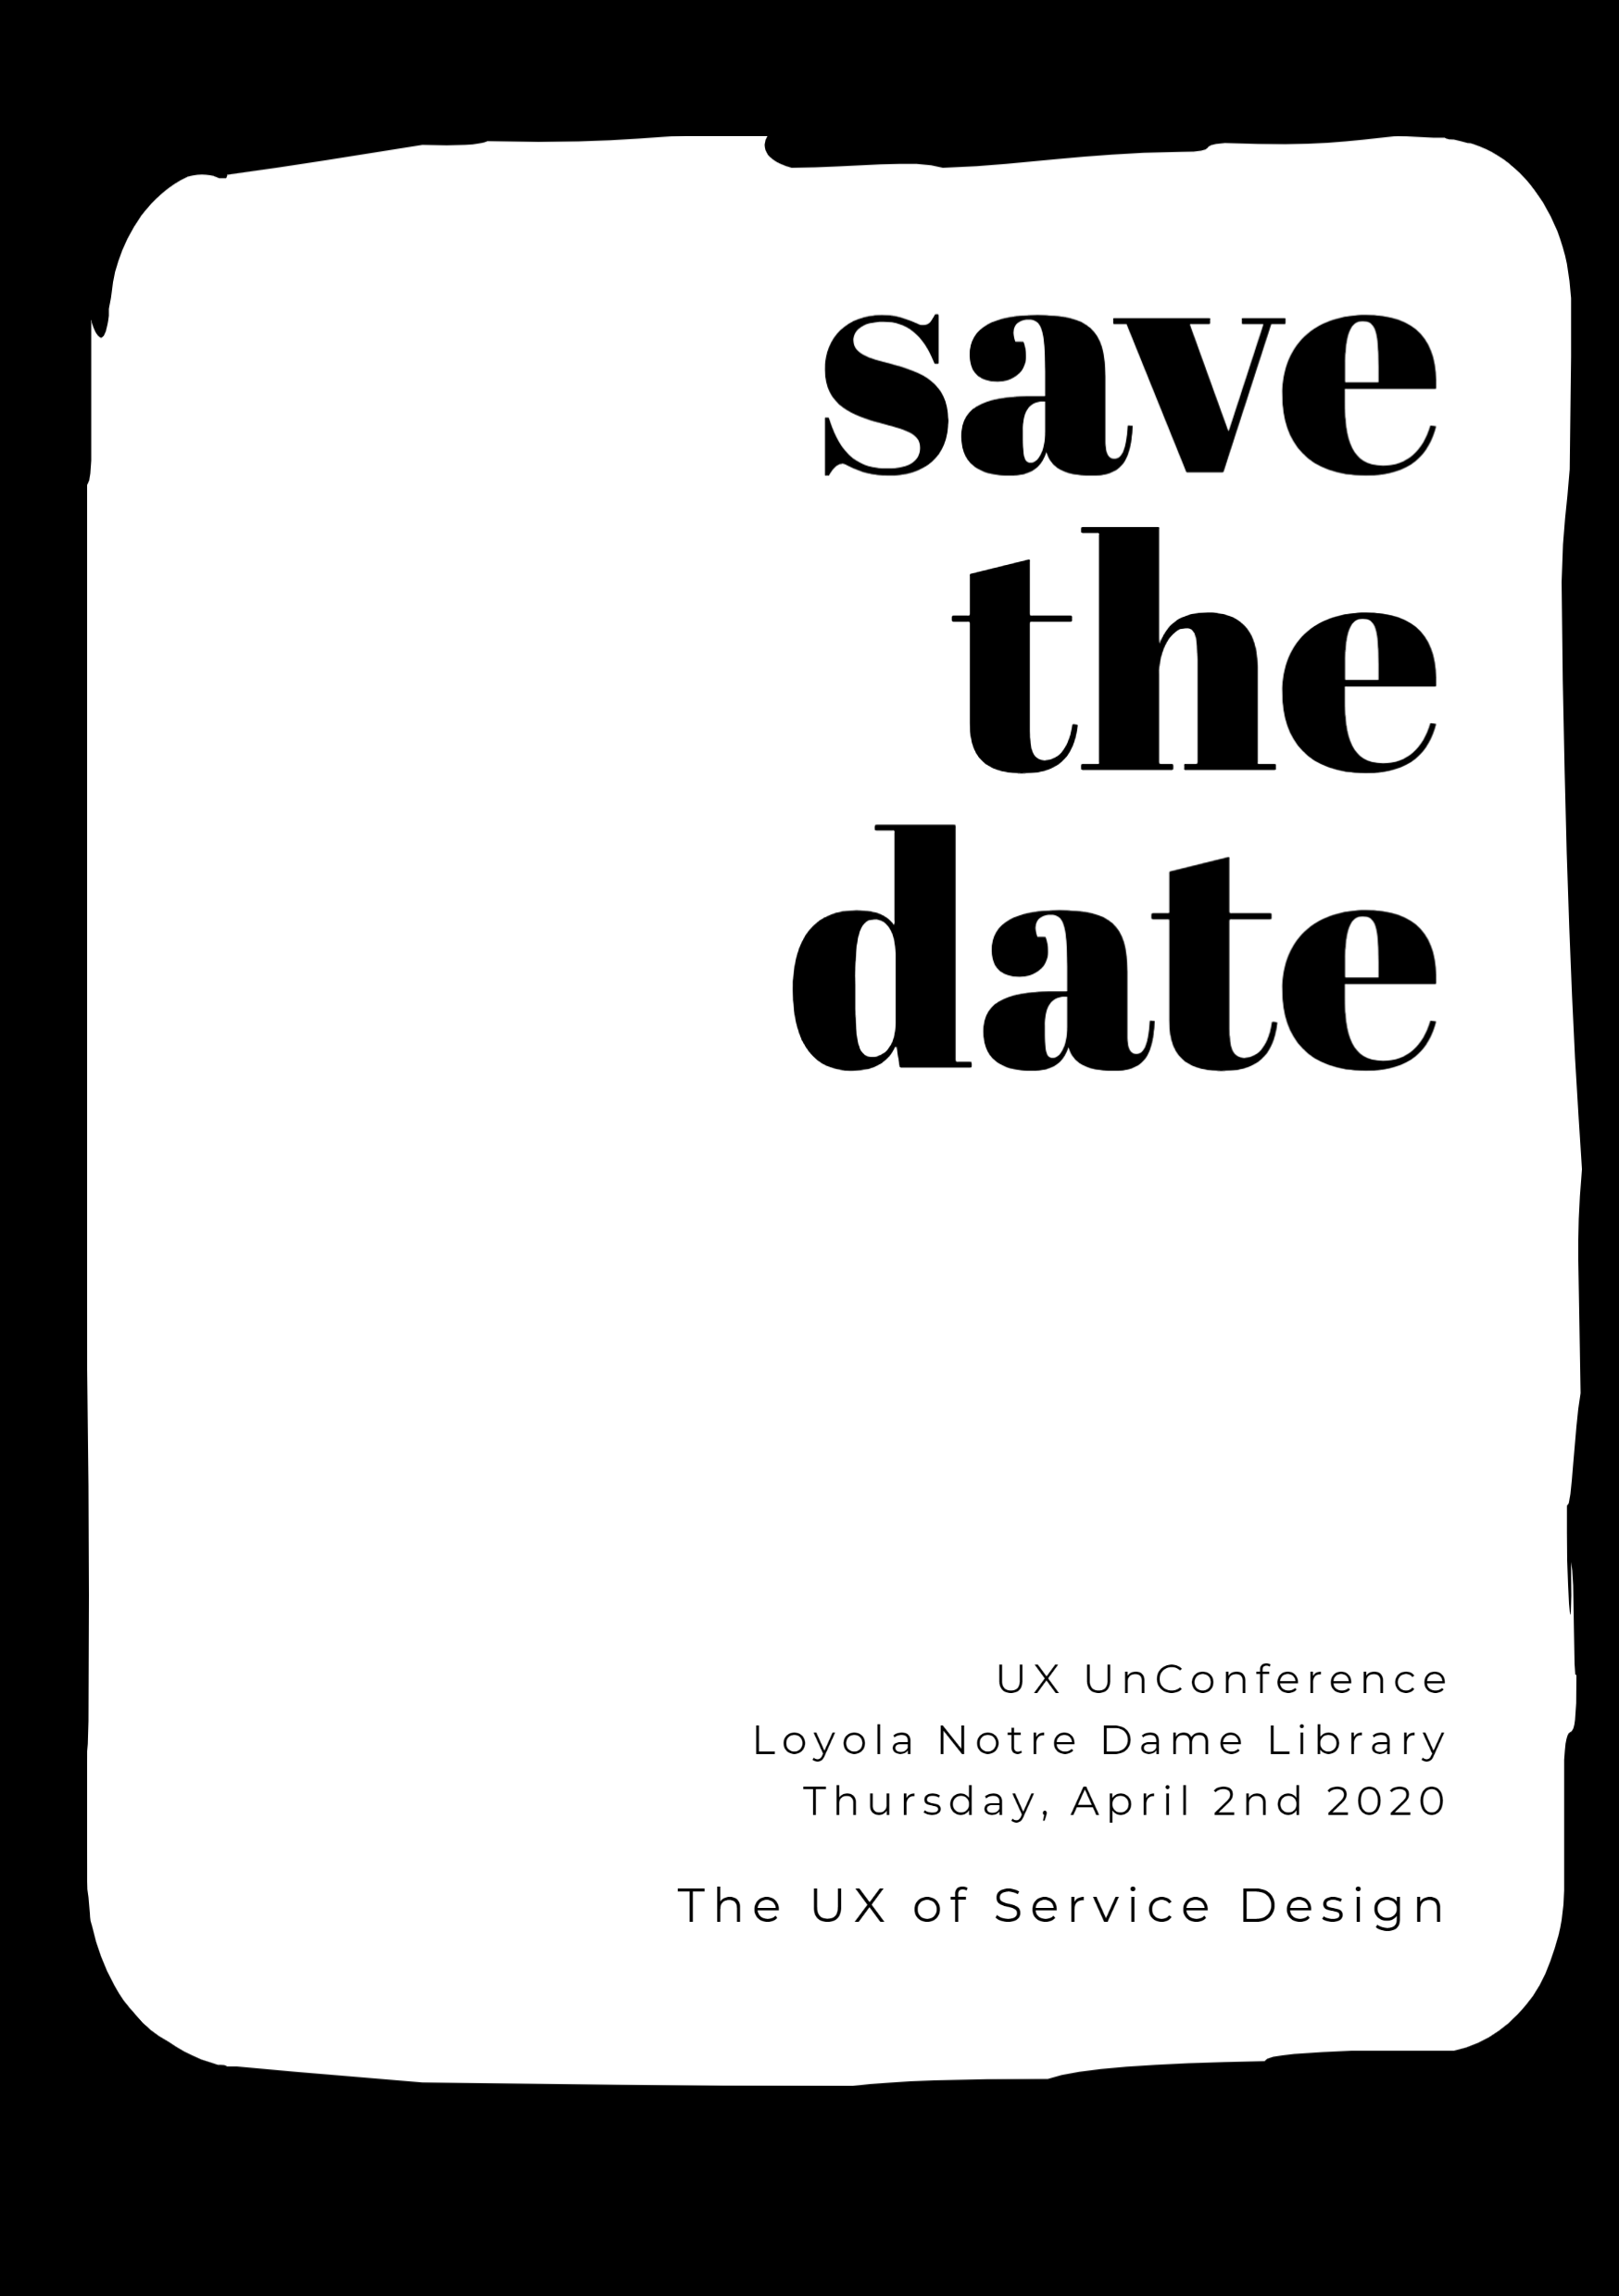 April 2, 2020 Save the Date for the UX UnConference at LNDL